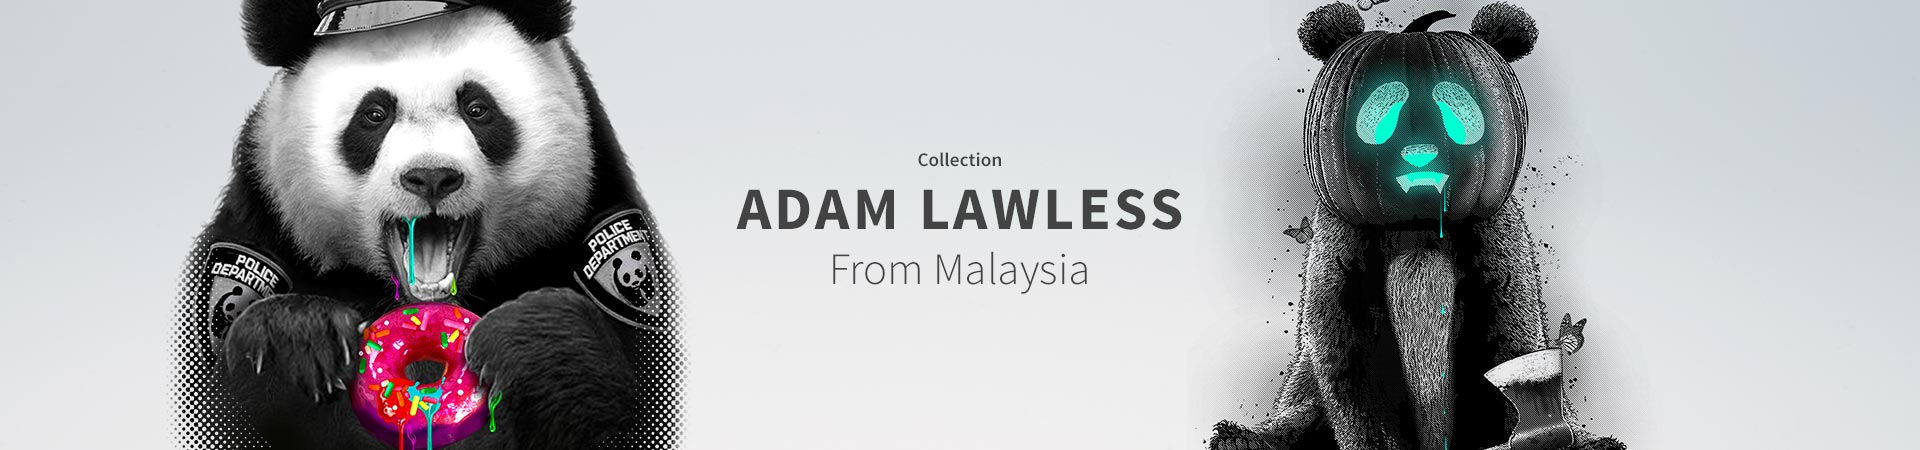 Collection Adam Lawless